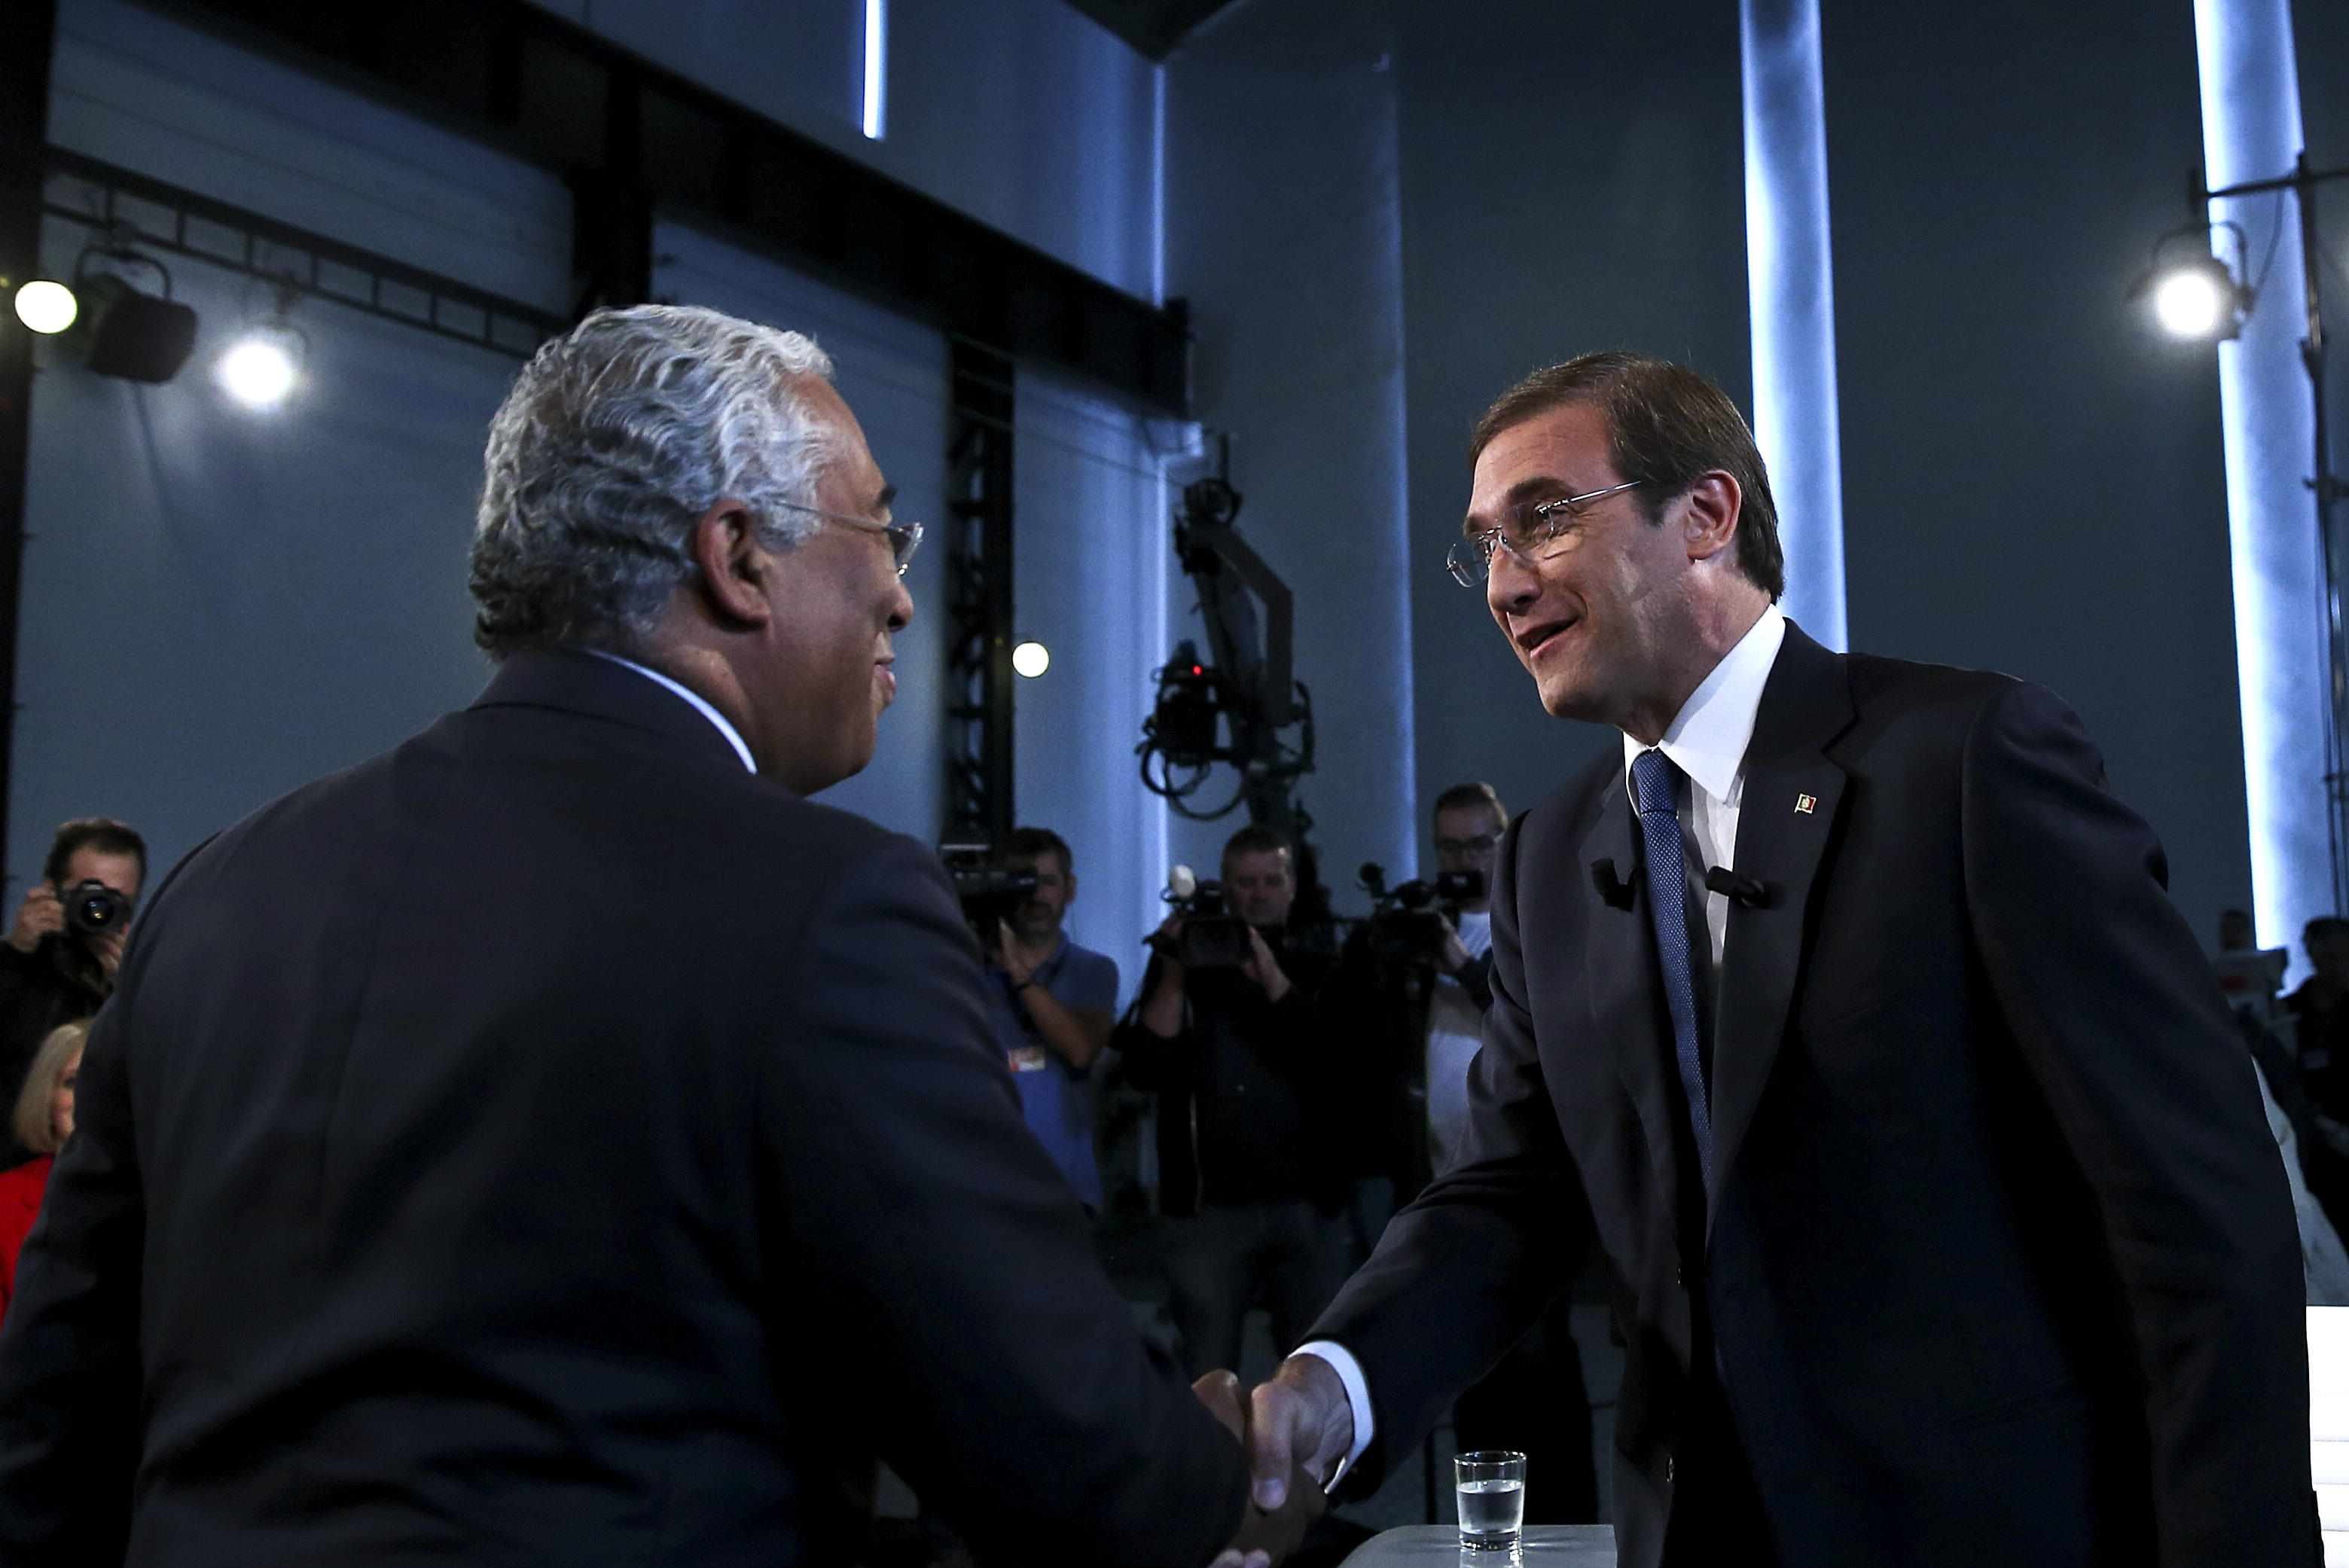 The Secretary-General of the Socialist Party (PS) and candidate Antonio Costa (L) greets the President of the Social Democrat Party (PSD), current Prime-Minister and candidate Pedro Passos Coelho (R), before their debate at the Electricity Museum in Lisbon, Portugal, 17 September 2015. The upcoming legislative election will take place on October 4th. It's the second debate between two leaders broadcasted simultaneously by the three major radios, Antena 1, Renascenca and TSF. TIAGO PETINGA/LUSA